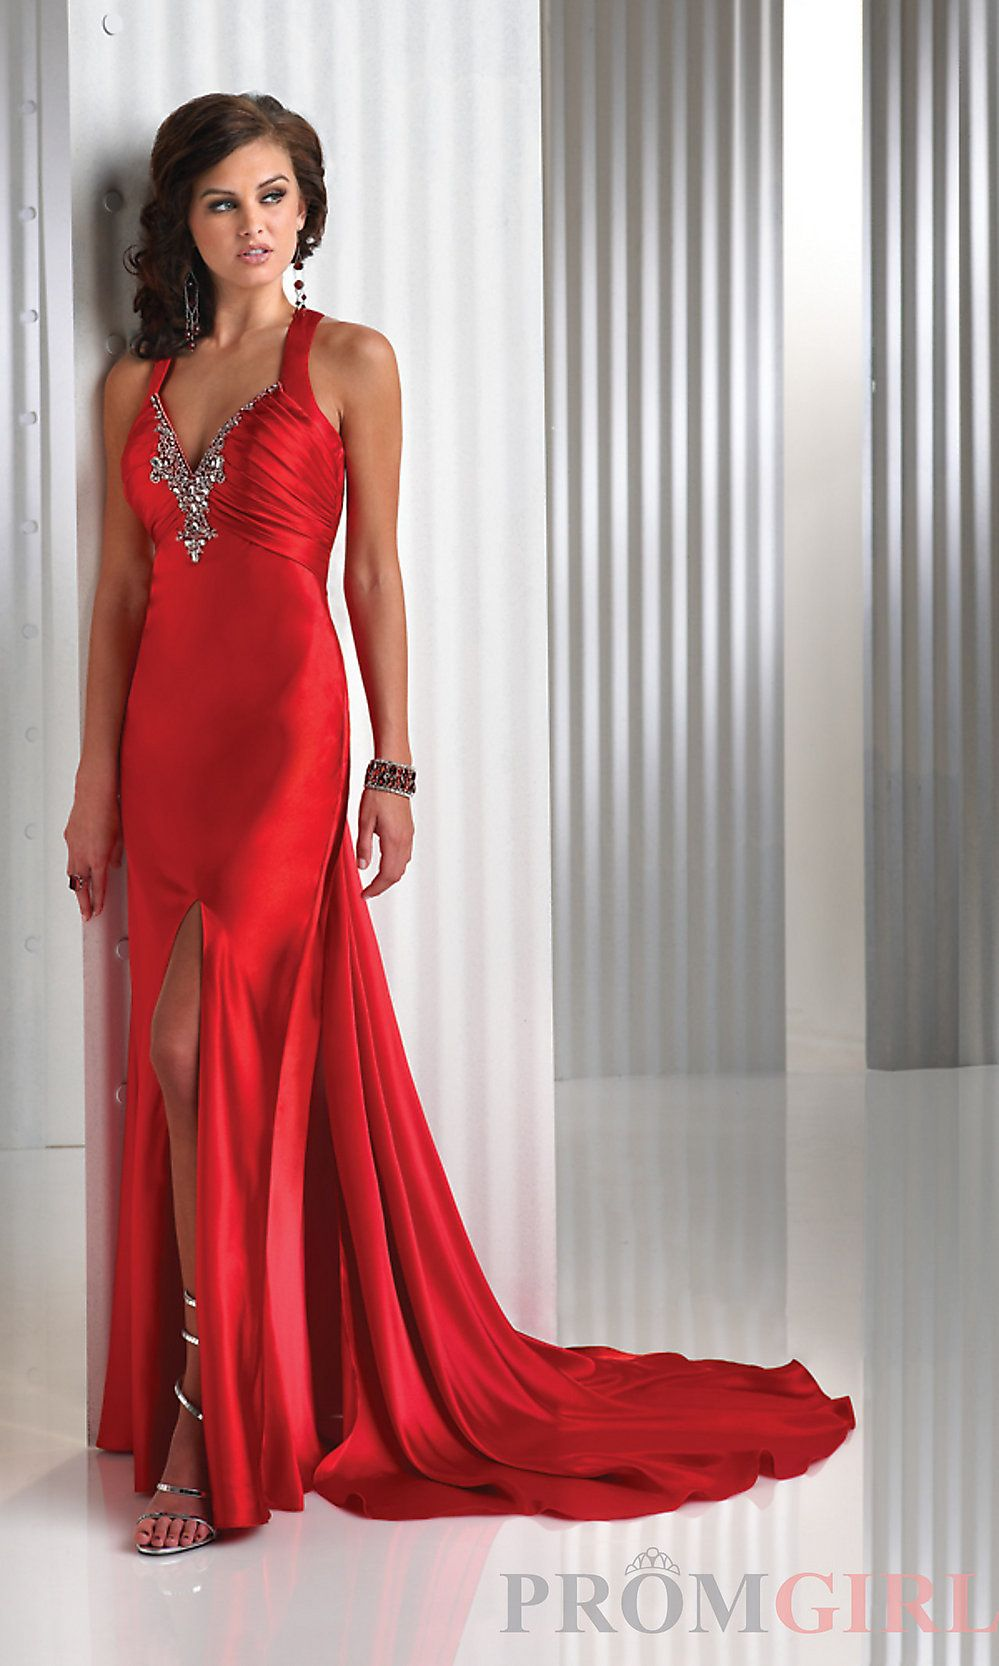 Sexy red prom dress flirt evening gown long red dress promgirl